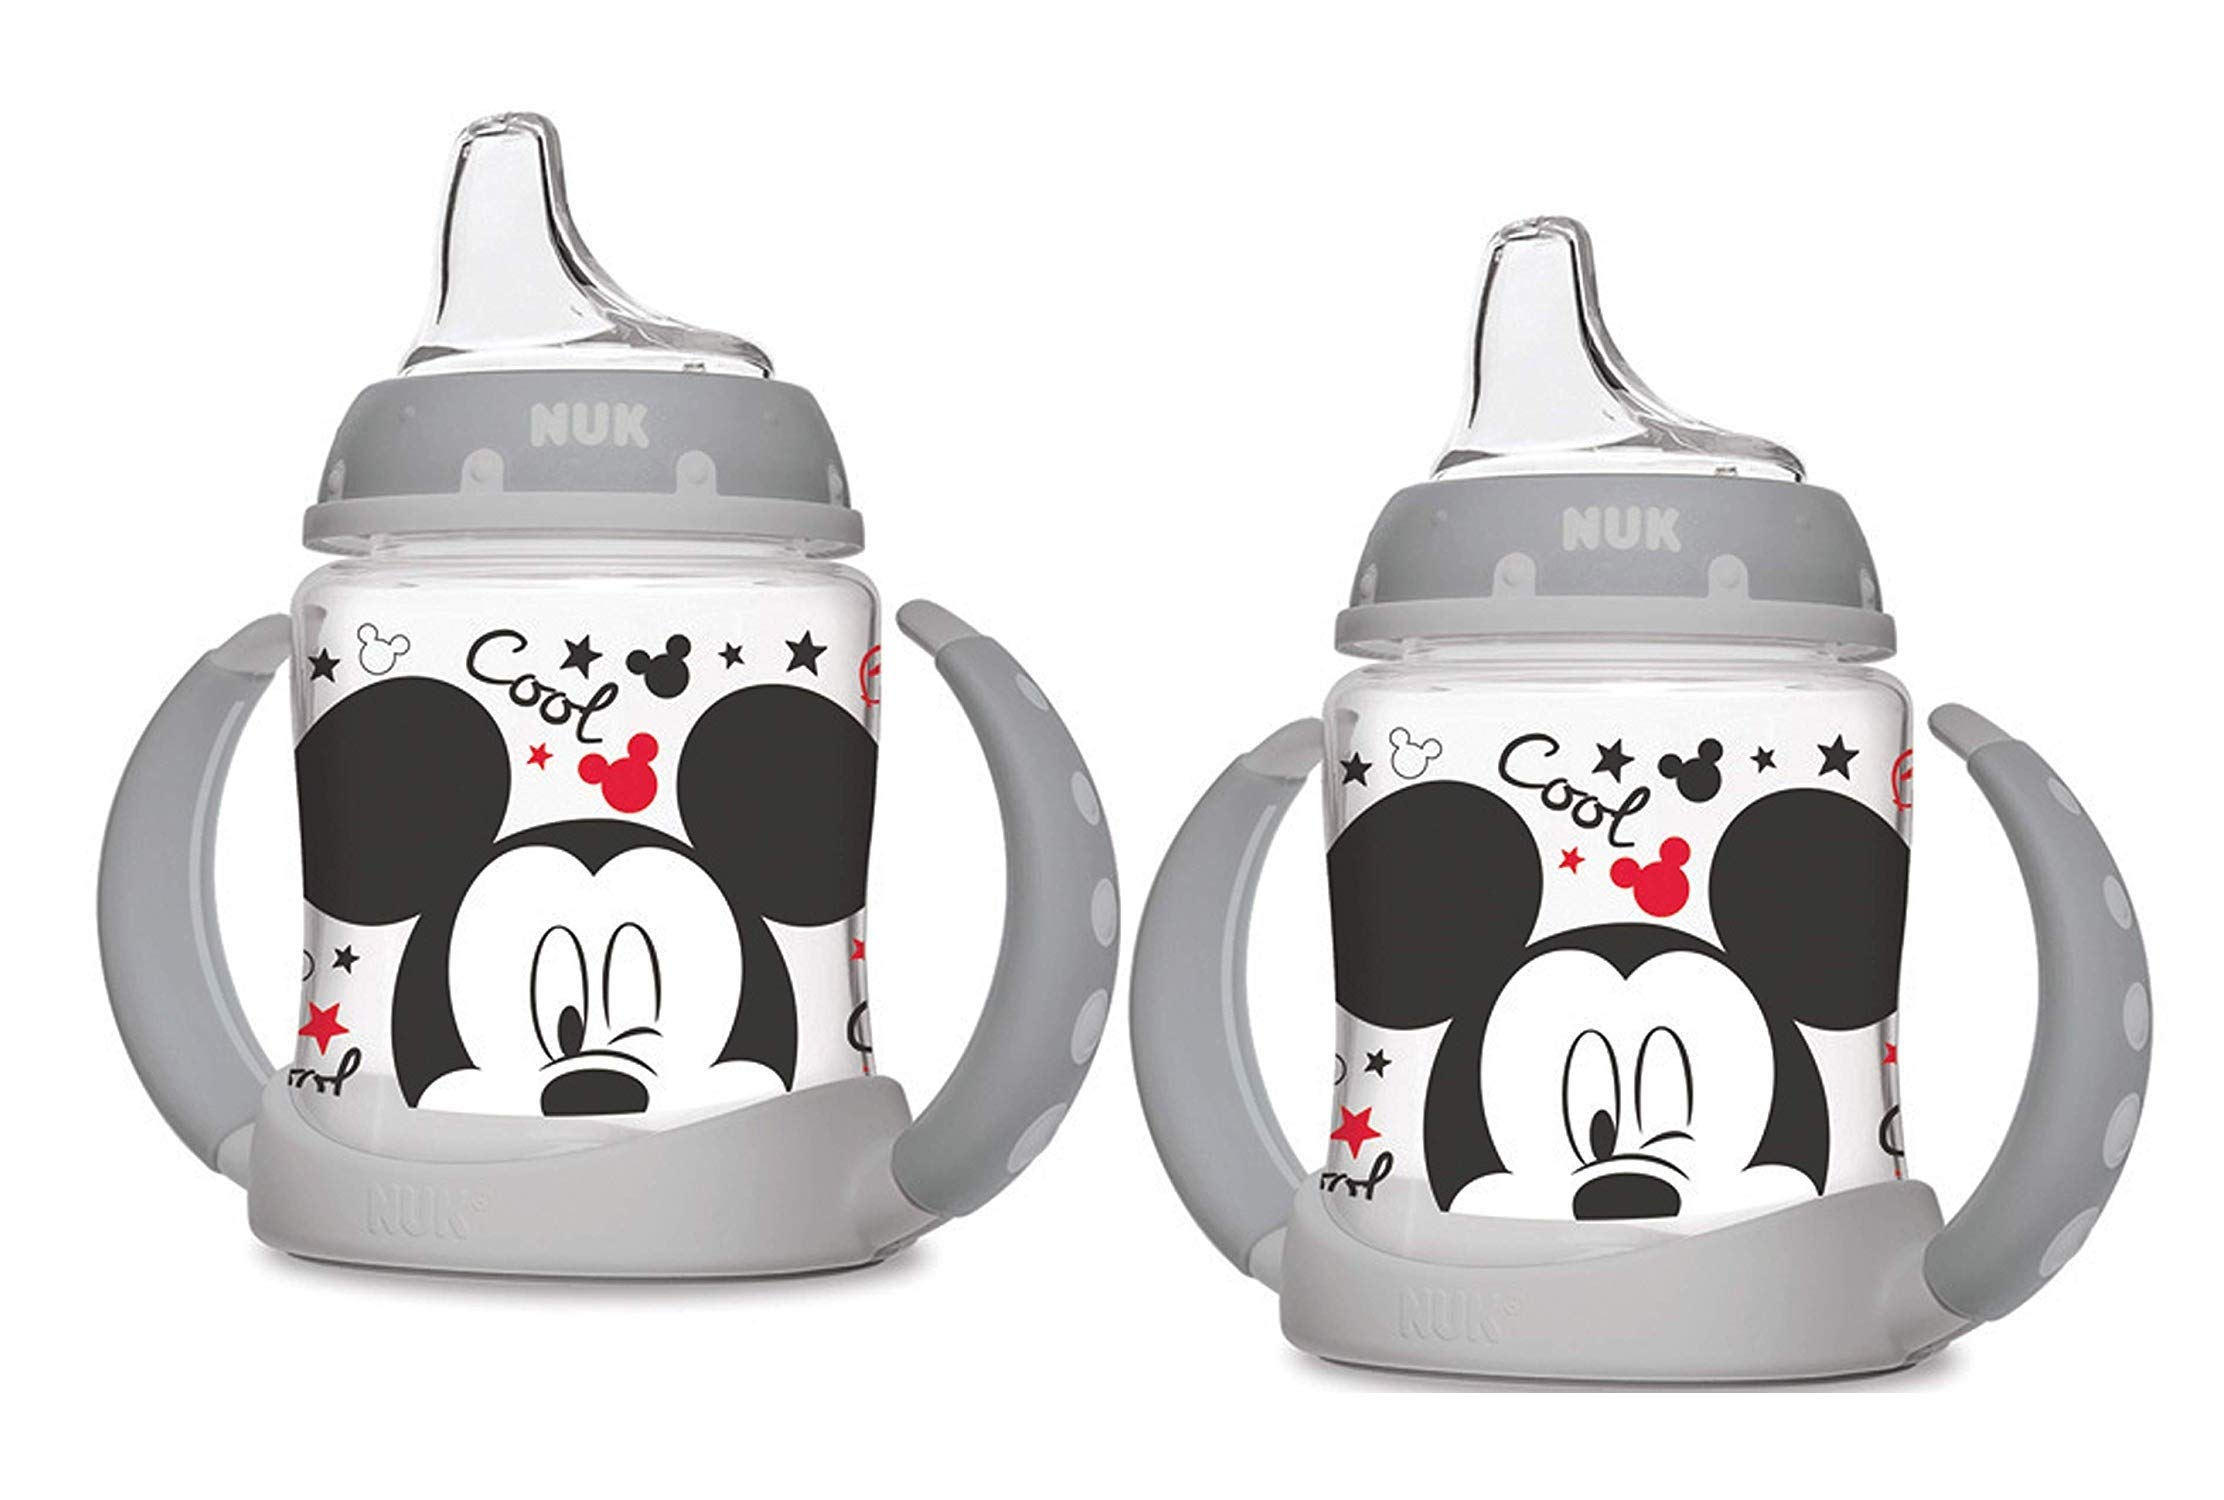 NUK Disney Learner Cup with Silicone Spout, Mickey Mouse, 5-Ounce, 2 Count by NUK